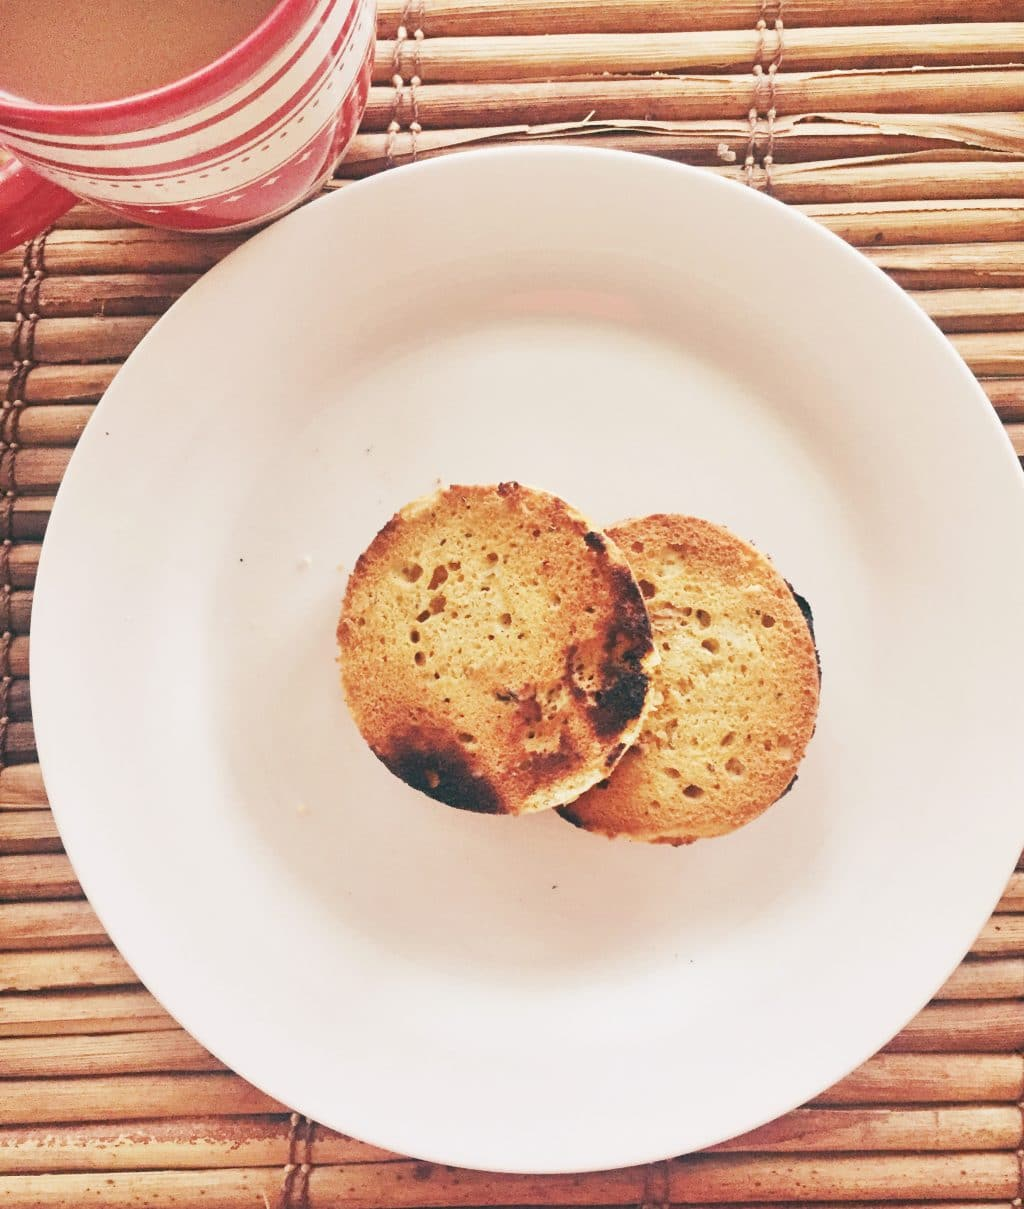 Low carb paleo English muffin